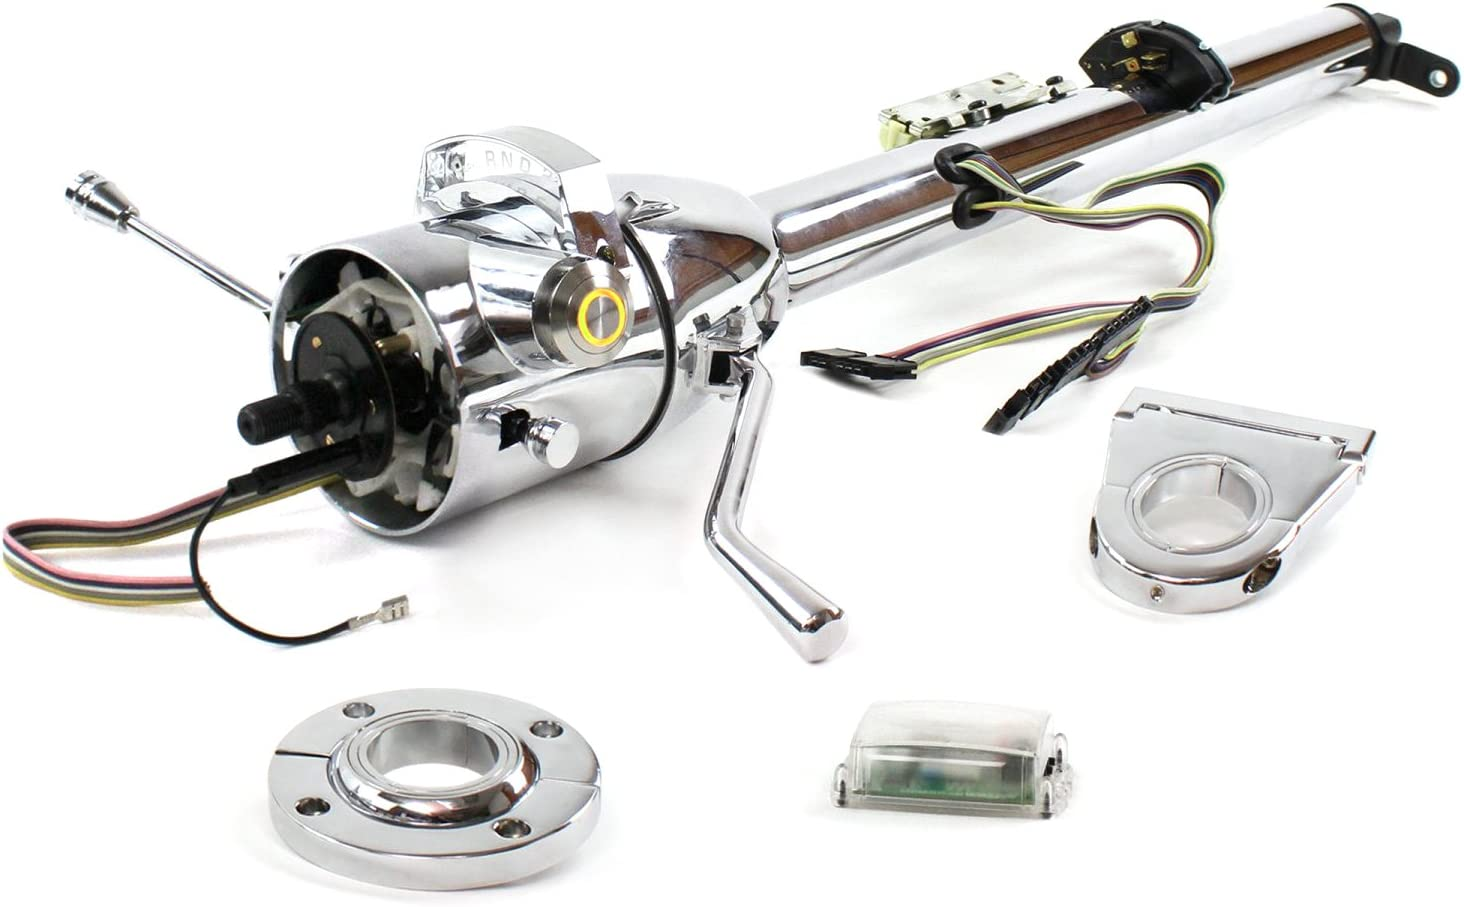 Helix 704408 Low price Steering Column Chrome - FLR High material MNT O Shift D